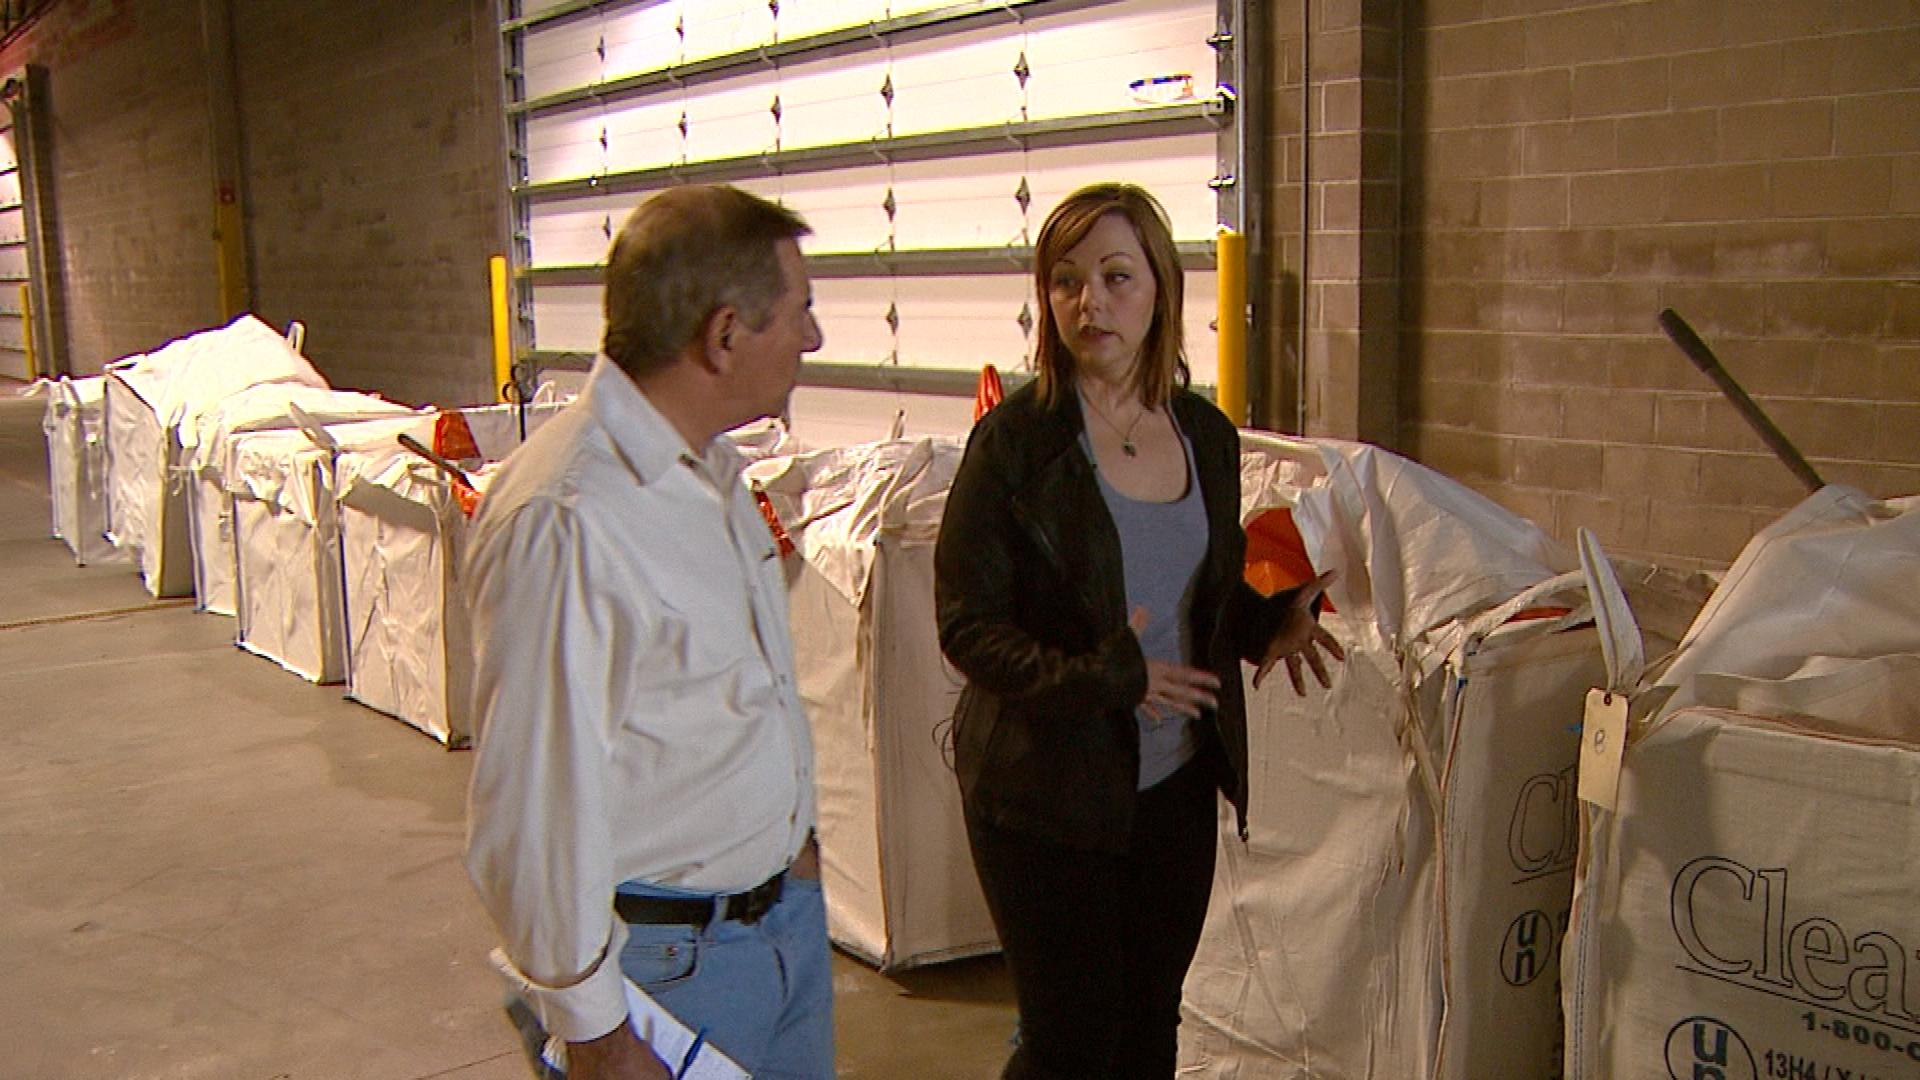 Julie Smith, a spokesperson for the Denver Department of Human, is interviewed by CBS4's Rick Sallinger (credit: CBS)